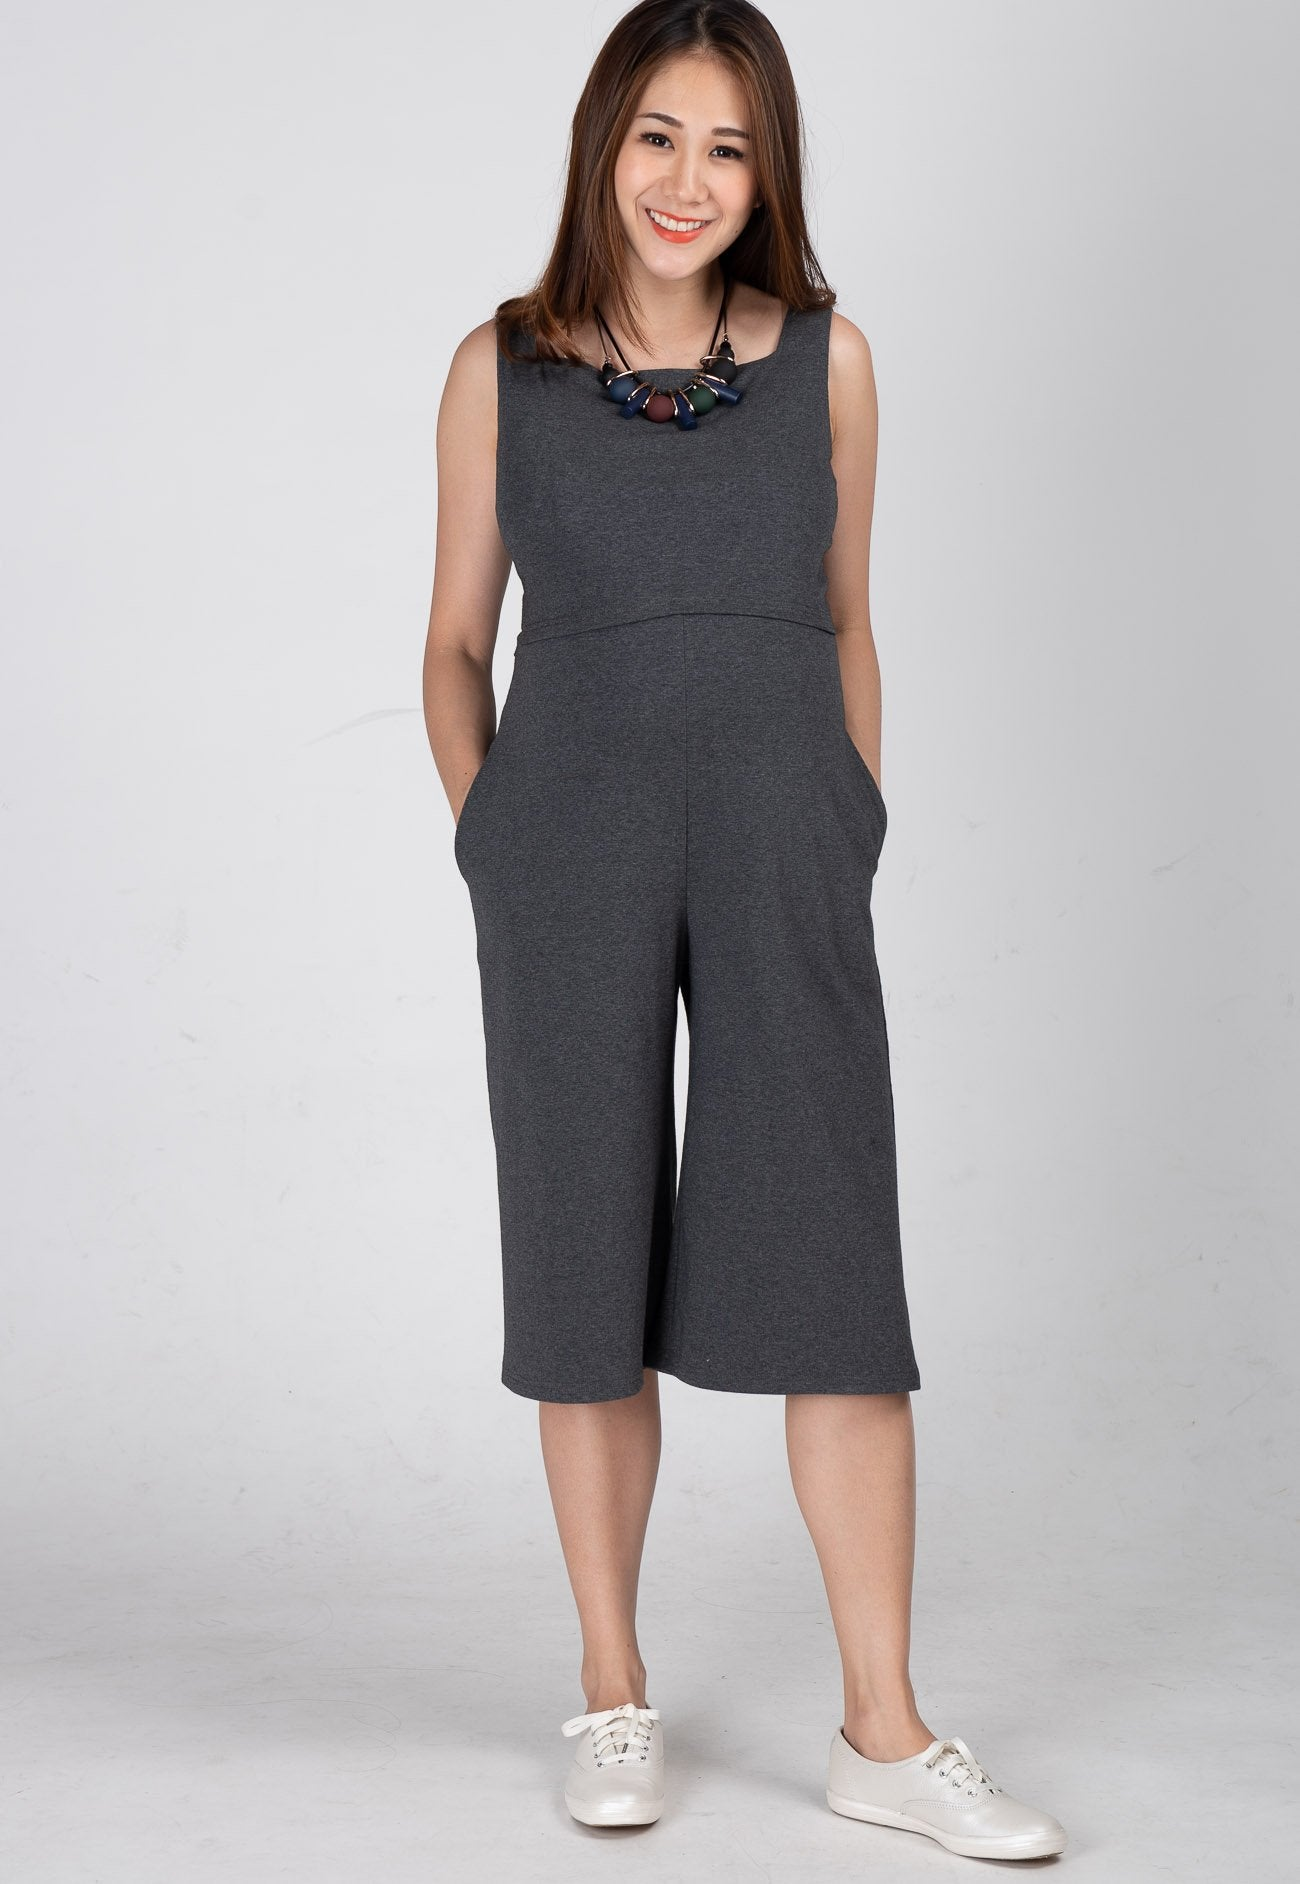 Mothercot Smart Casual Nursing Jumpsuit in Grey  by JumpEatCry - Maternity and nursing wear